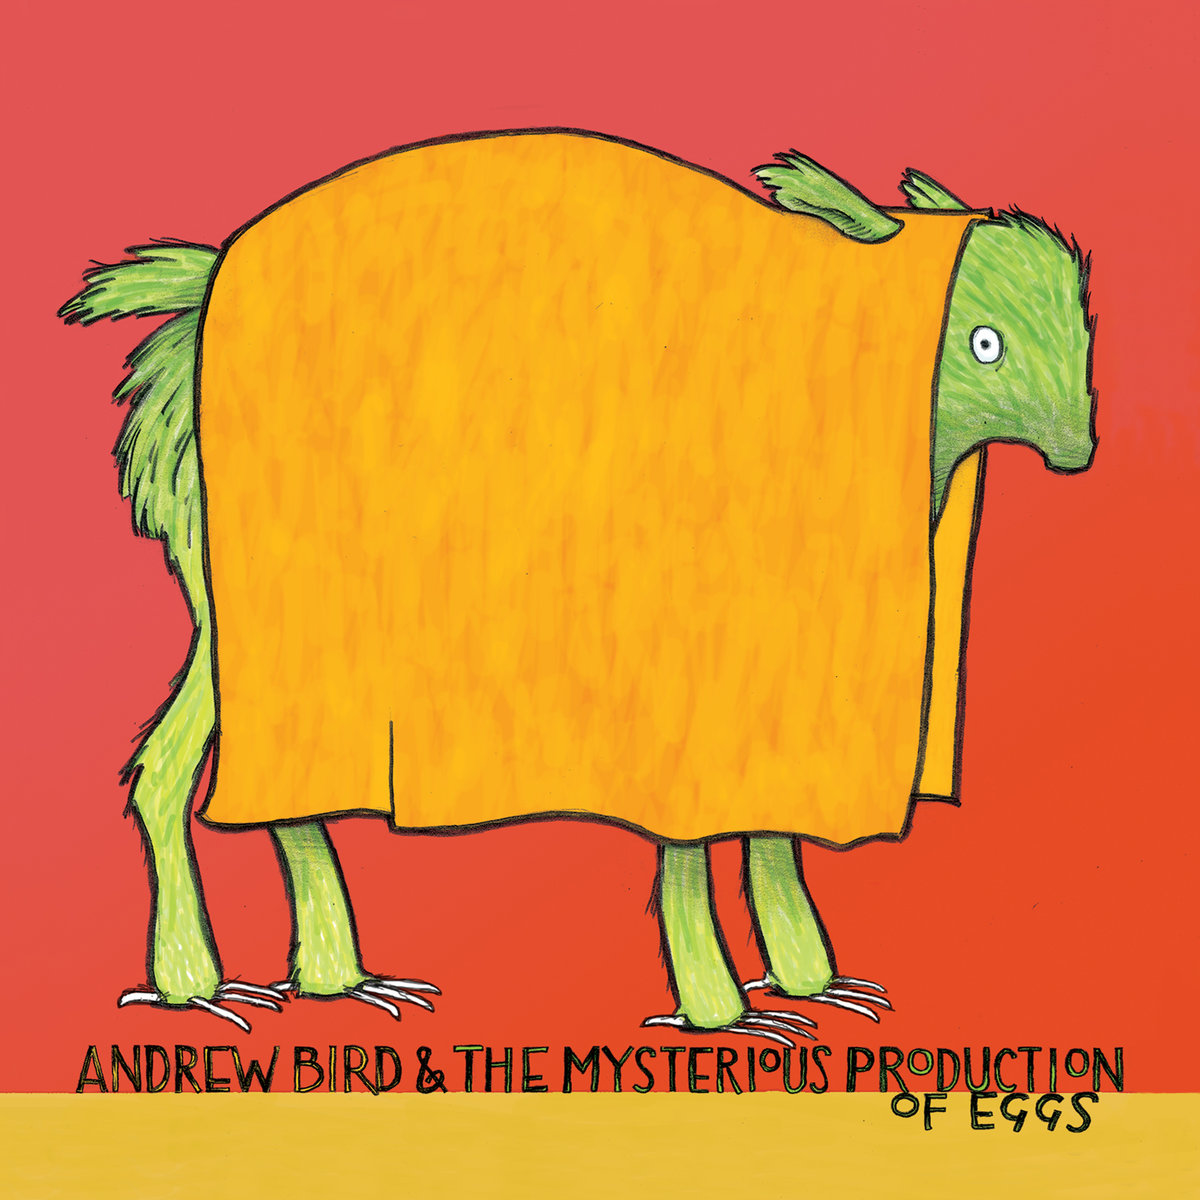 Andrew Bird, The Mysterious Production of Eggs